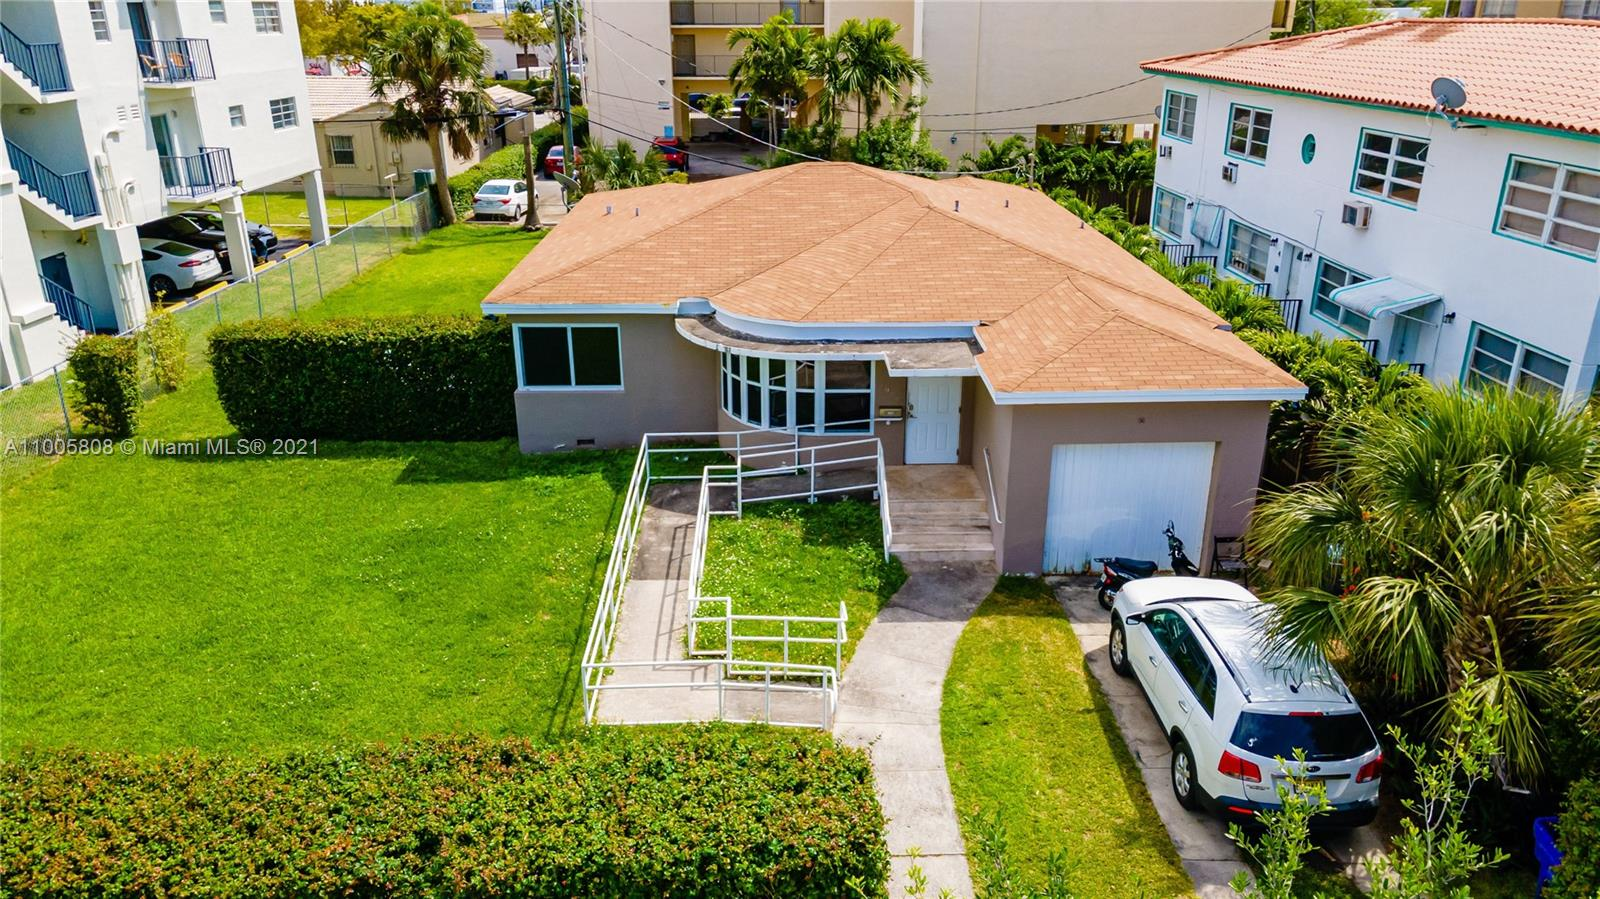 Great Opportunity to own a Renovated 5/5 home in a Wonderful Miami Beach area, Zoned RM-1 3900 - MULTI-FAMILY - 38-62 U/A.  This property can be converted into a 16 units building. Building code changes plans must be updated for new code. Property Sale AS IS.  This house offer a lot of potentials and possibilities.